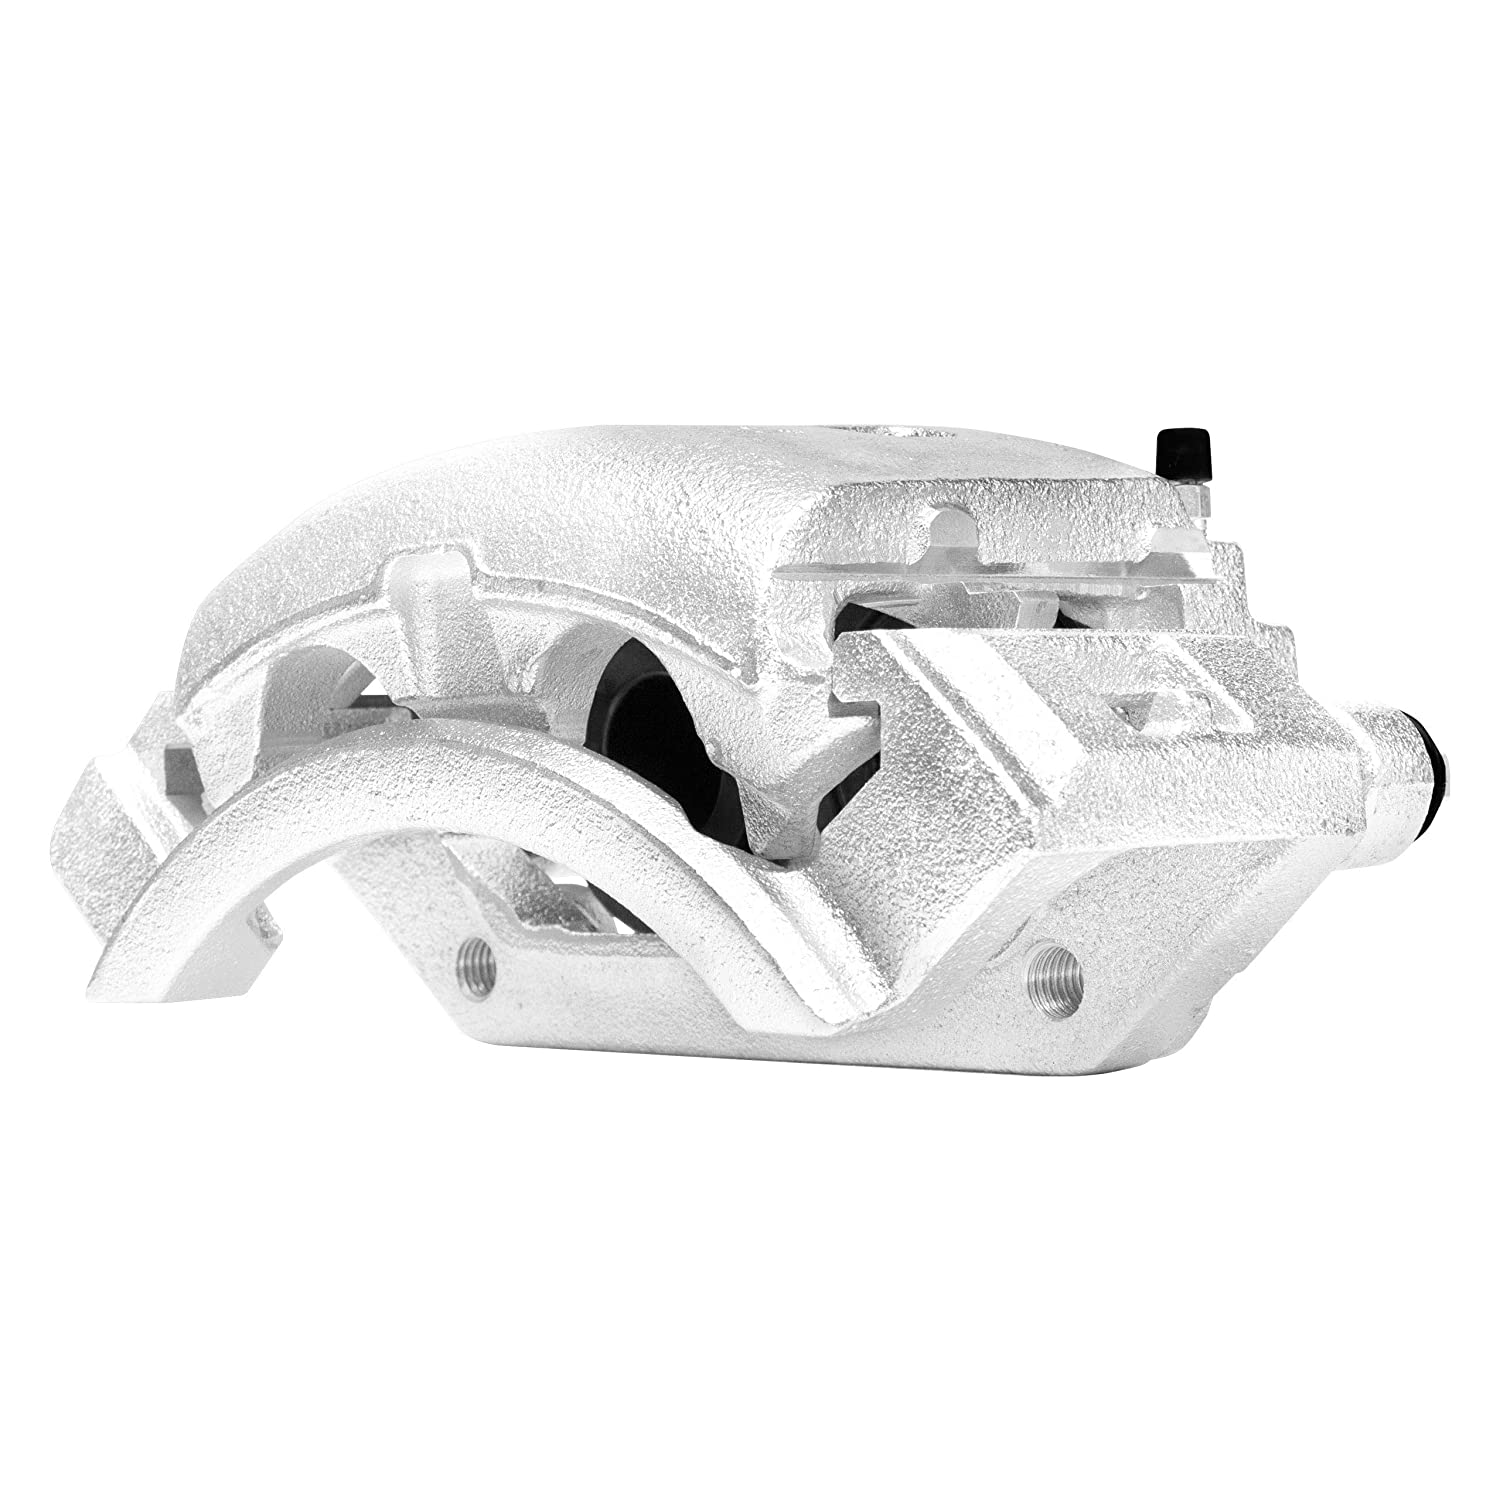 Front Right Dynamic Friction Company Premium Brake Caliper 331-68026